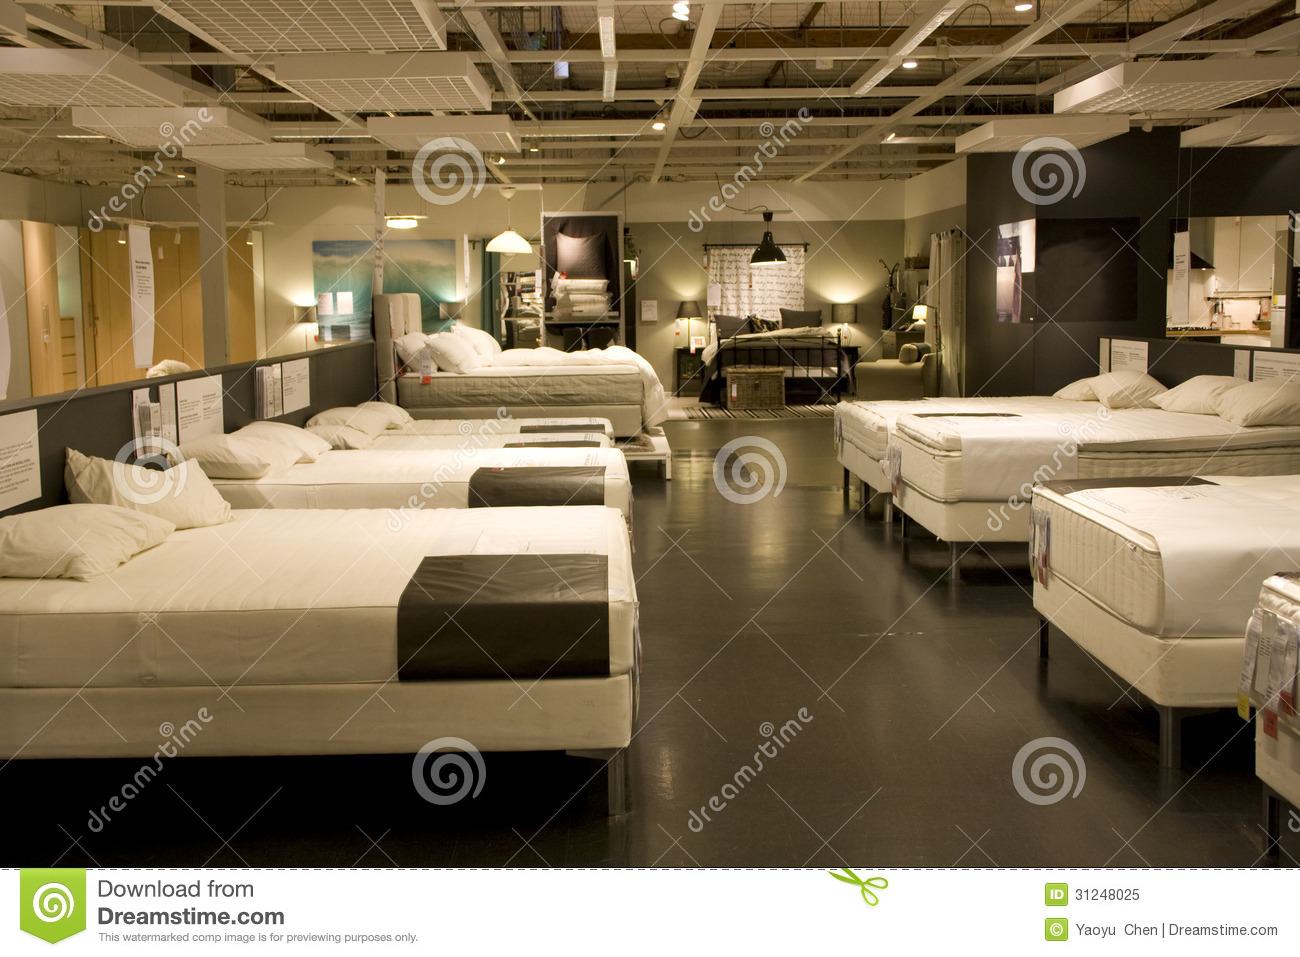 Furniture Mattress Bed Store Royalty Free Stock Photo Image 31248025